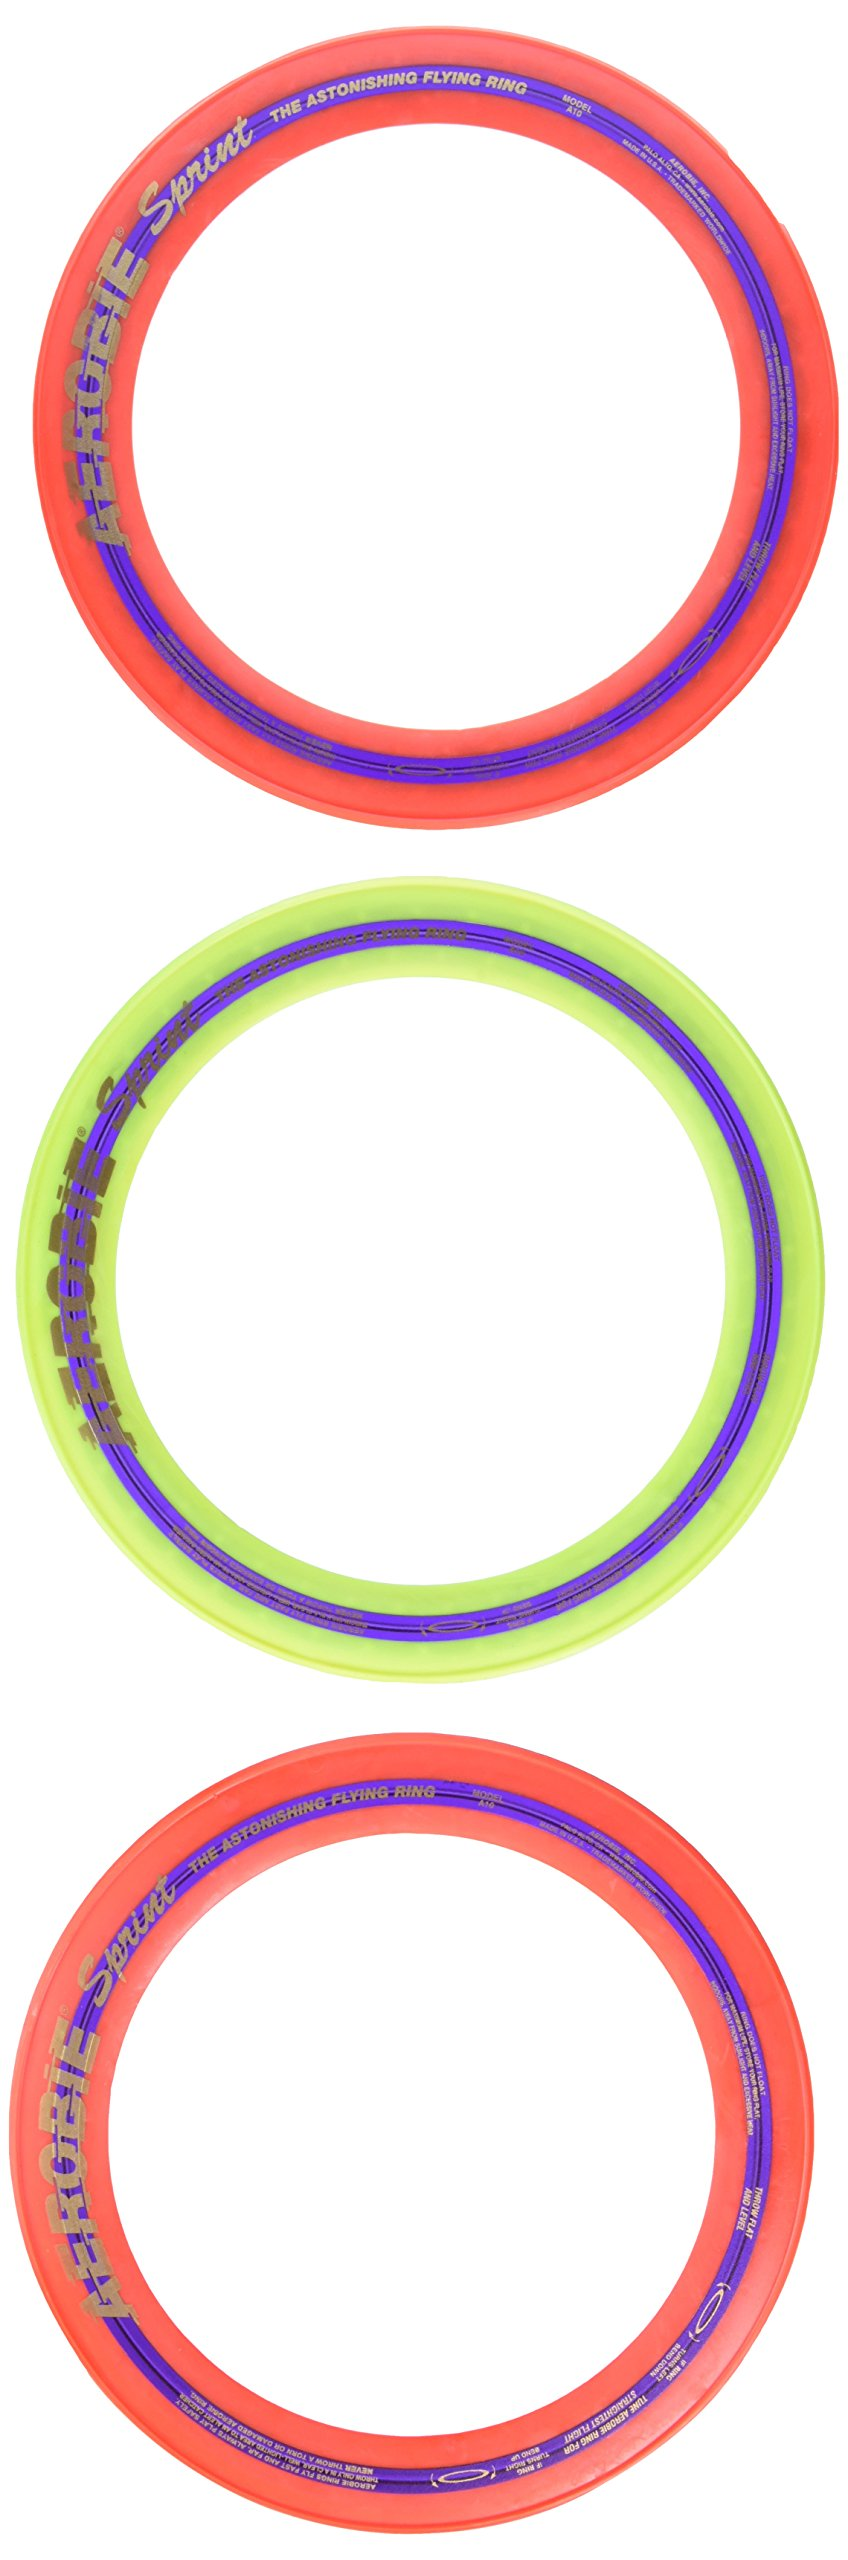 Aerobie Sprint Flying Ring, 10'' Diameter, Assorted Colors, Set of 3 by Aerobie